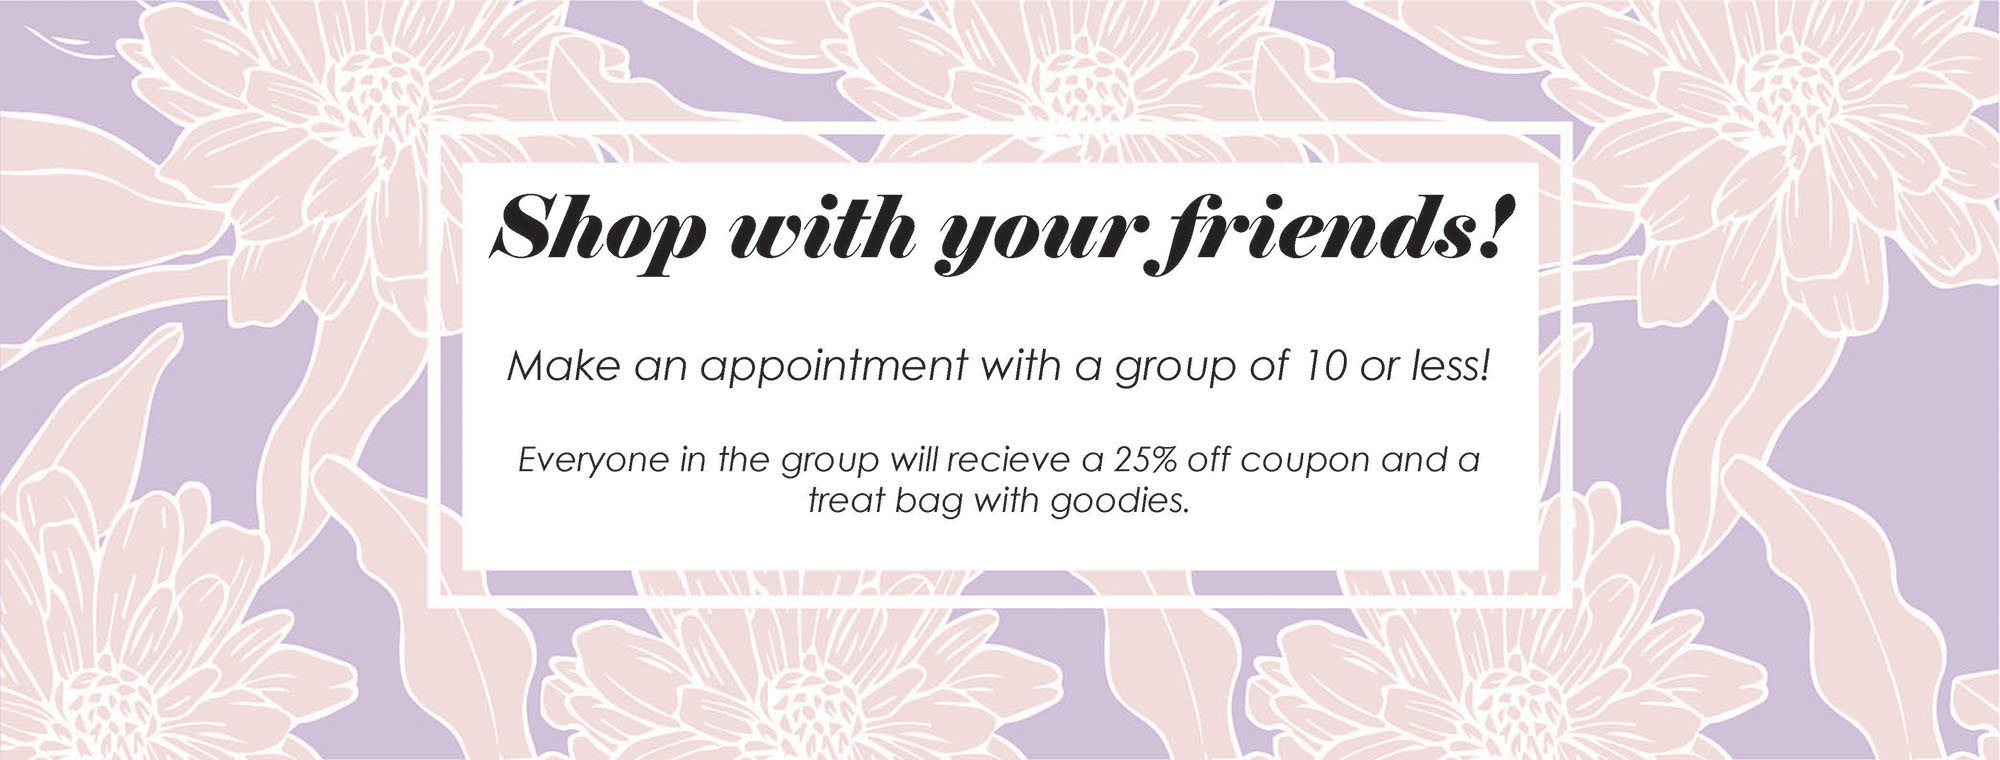 schedule a group shopping appointment